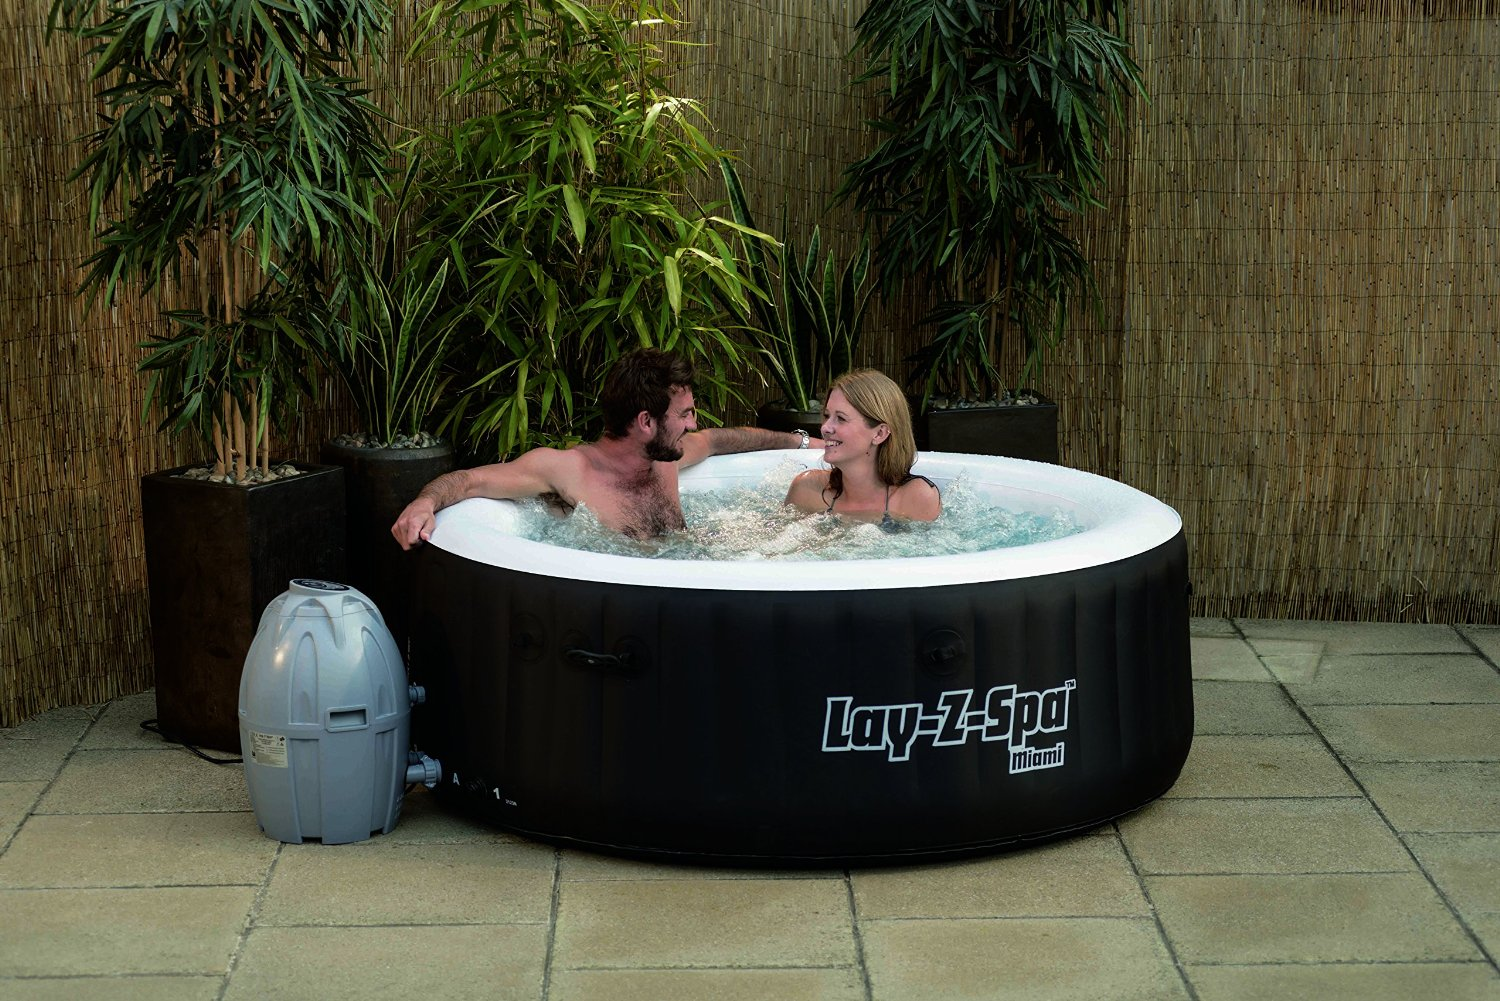 Cheap Hot Tubs Uk >> Lay Z Spa Miami Inflatable Hot Tub - Hot Tubs For Sale UK